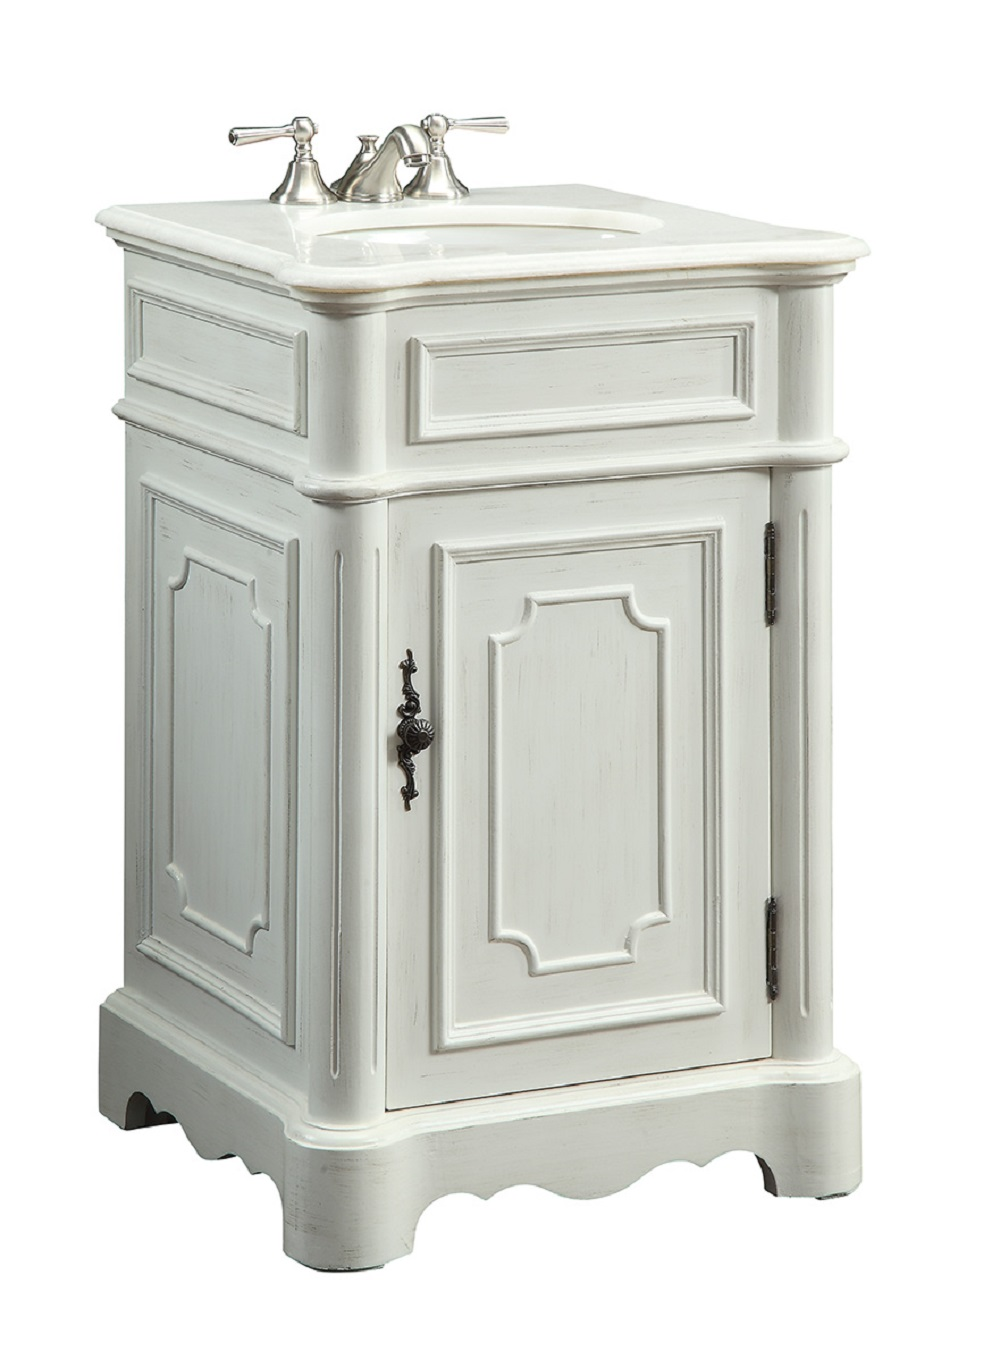 21 Inch Traditional Classic Small Size Bathroom Vanity